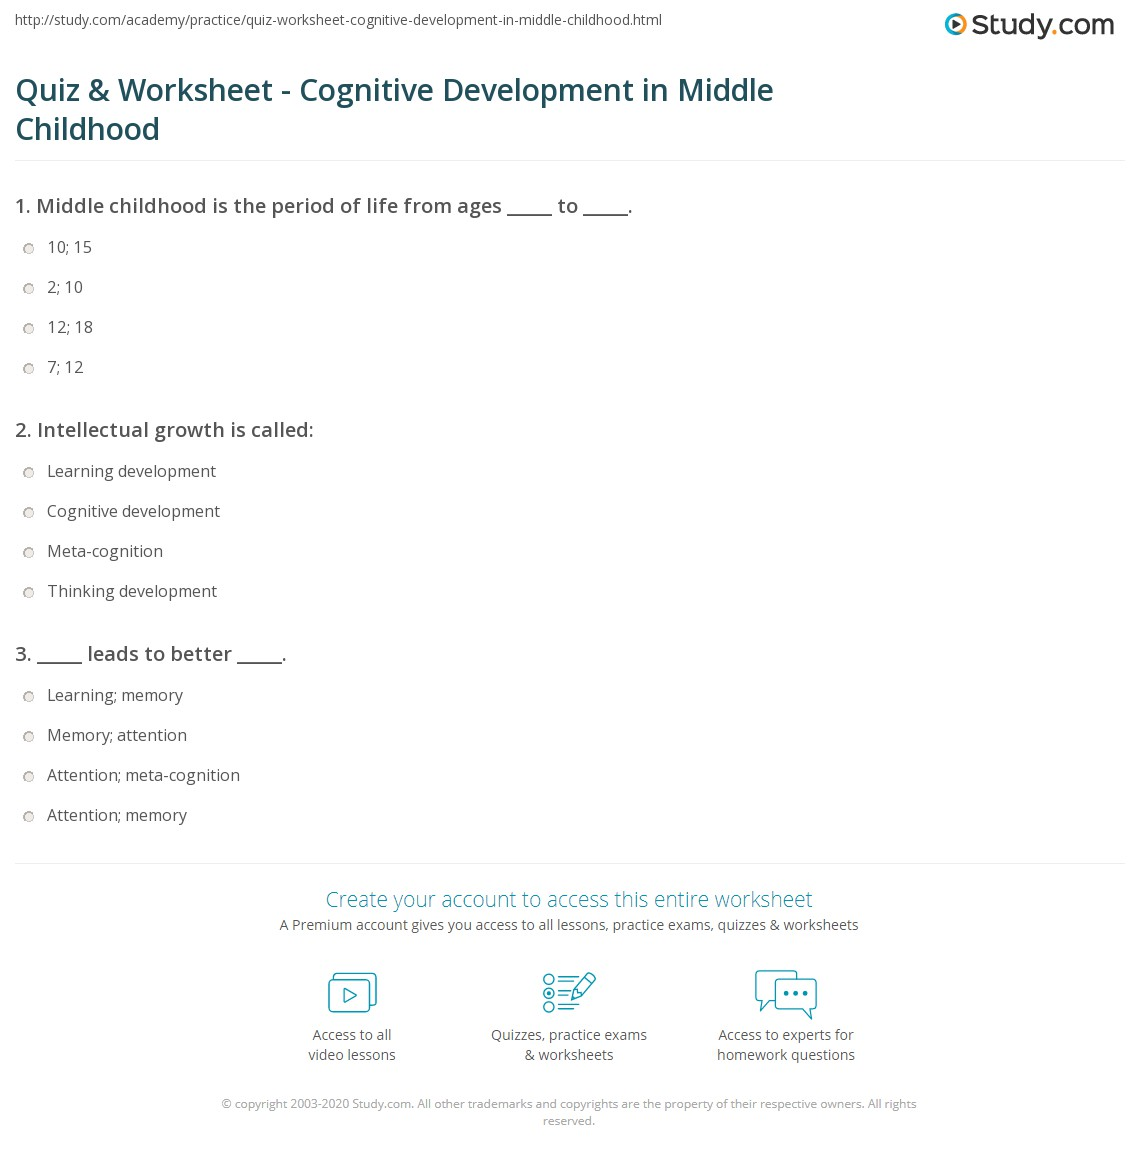 quiz worksheet cognitive development in middle childhood print attention memory and meta cognition development in middle childhood worksheet